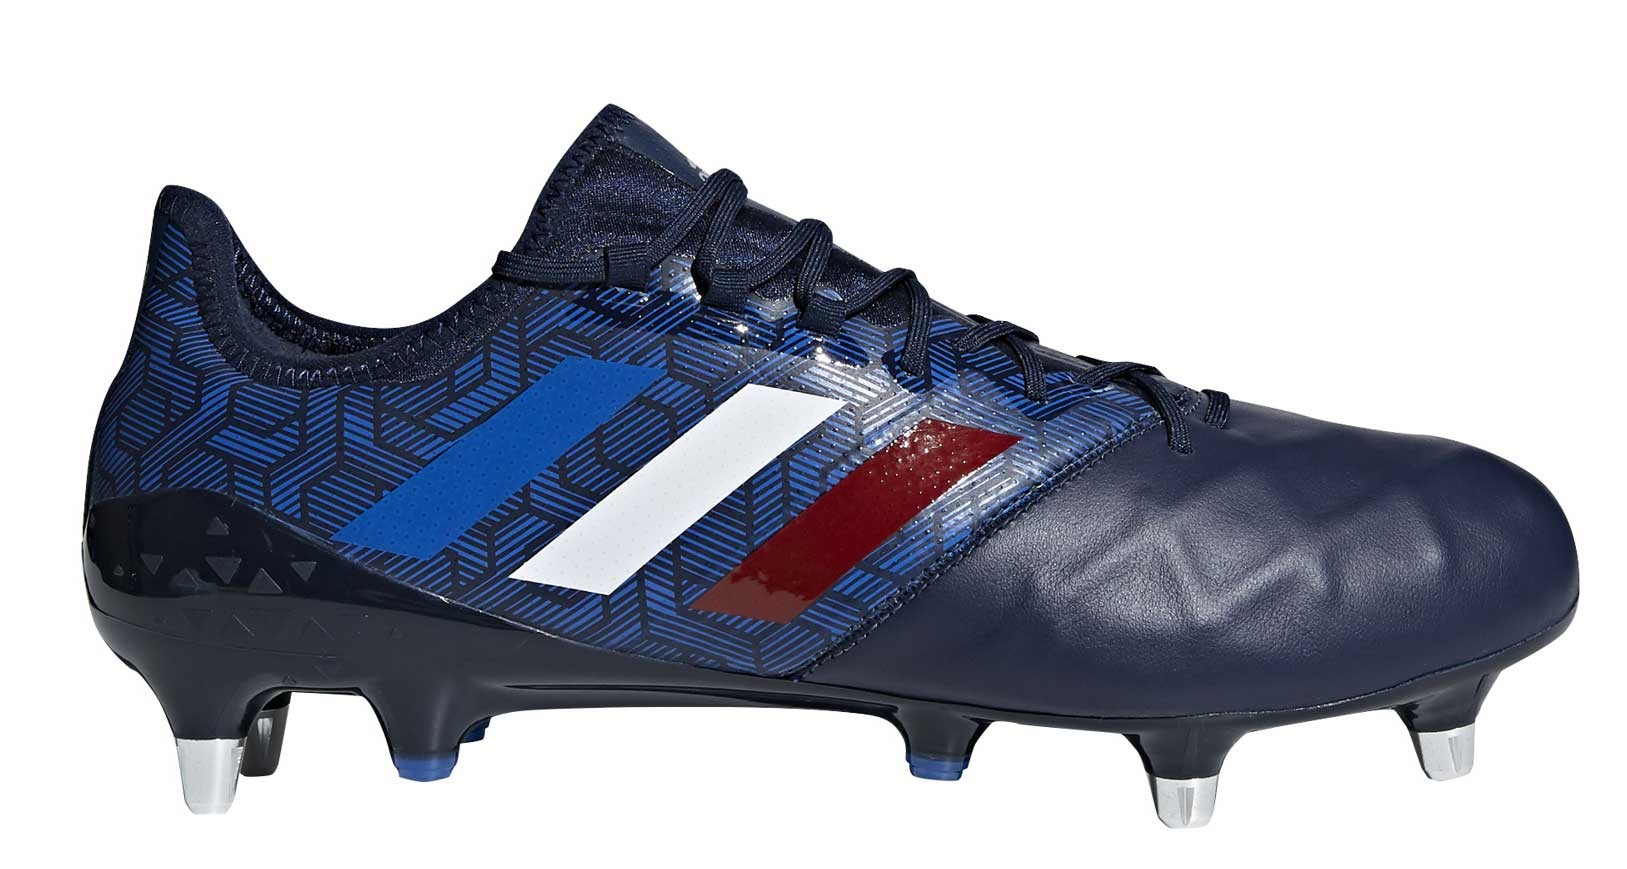 Chaussures Rugby Kakari Light Tricolore adidas